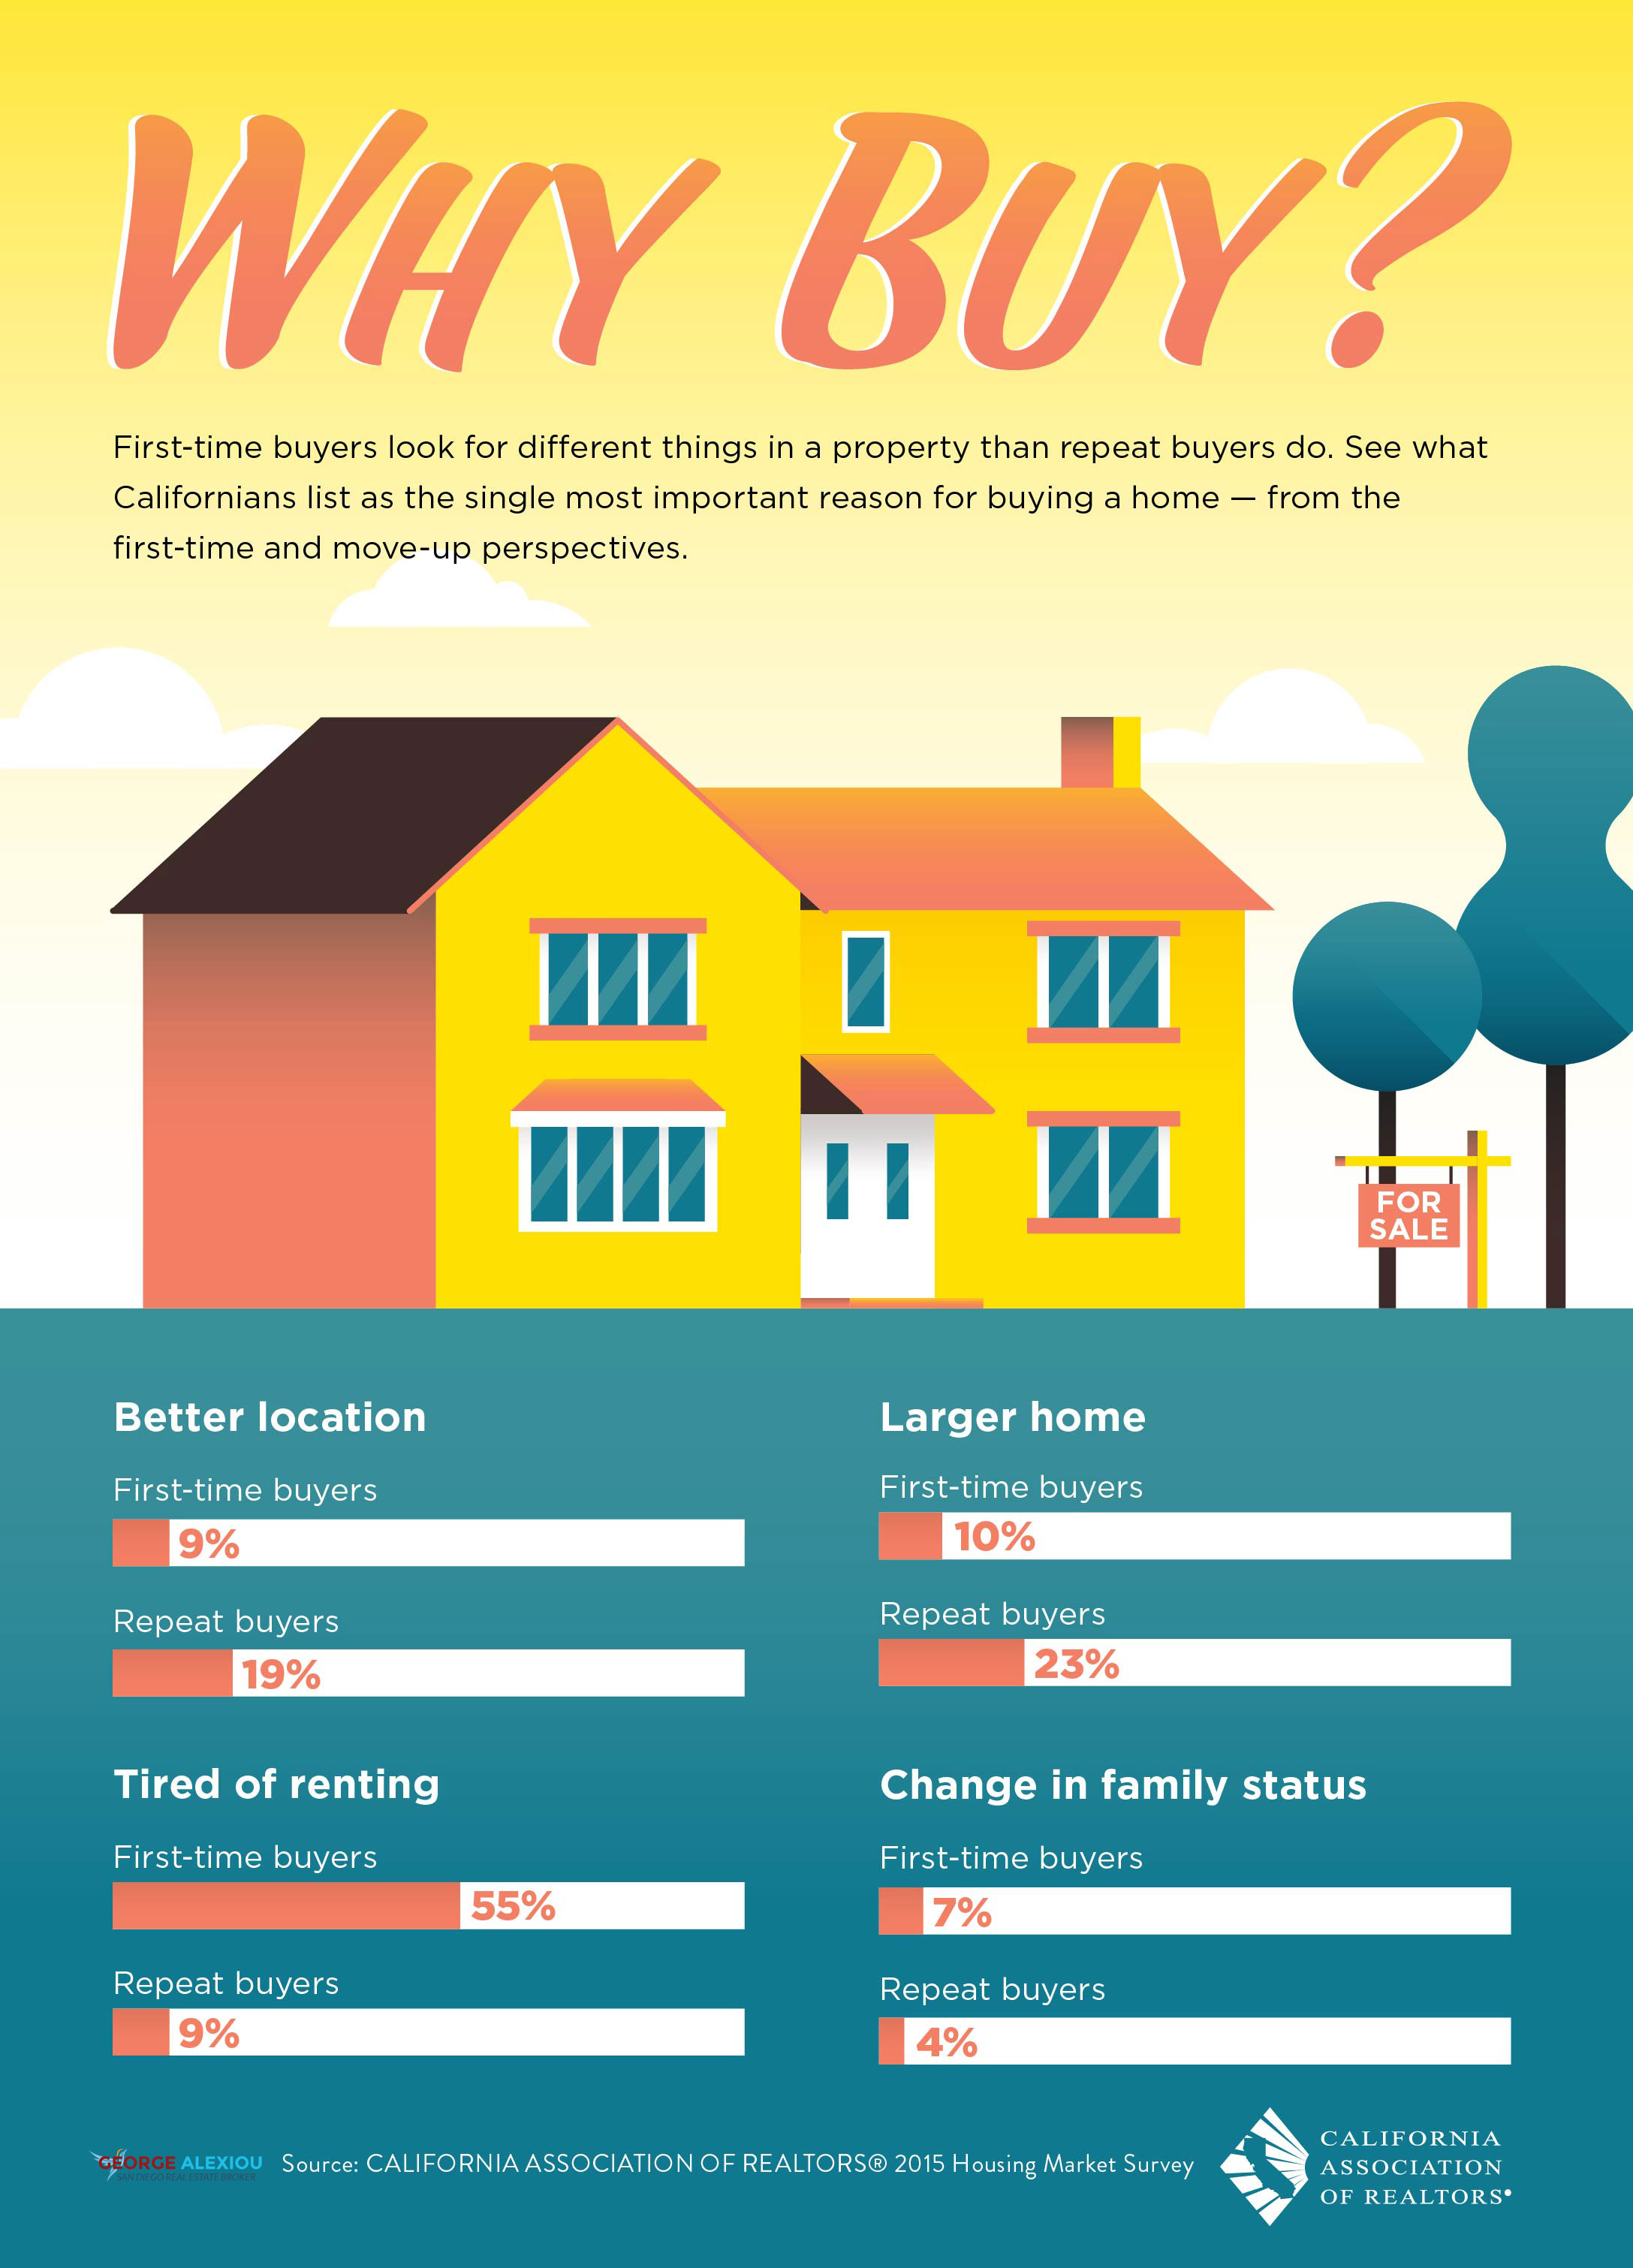 Why Buy? Top reasons buying a home